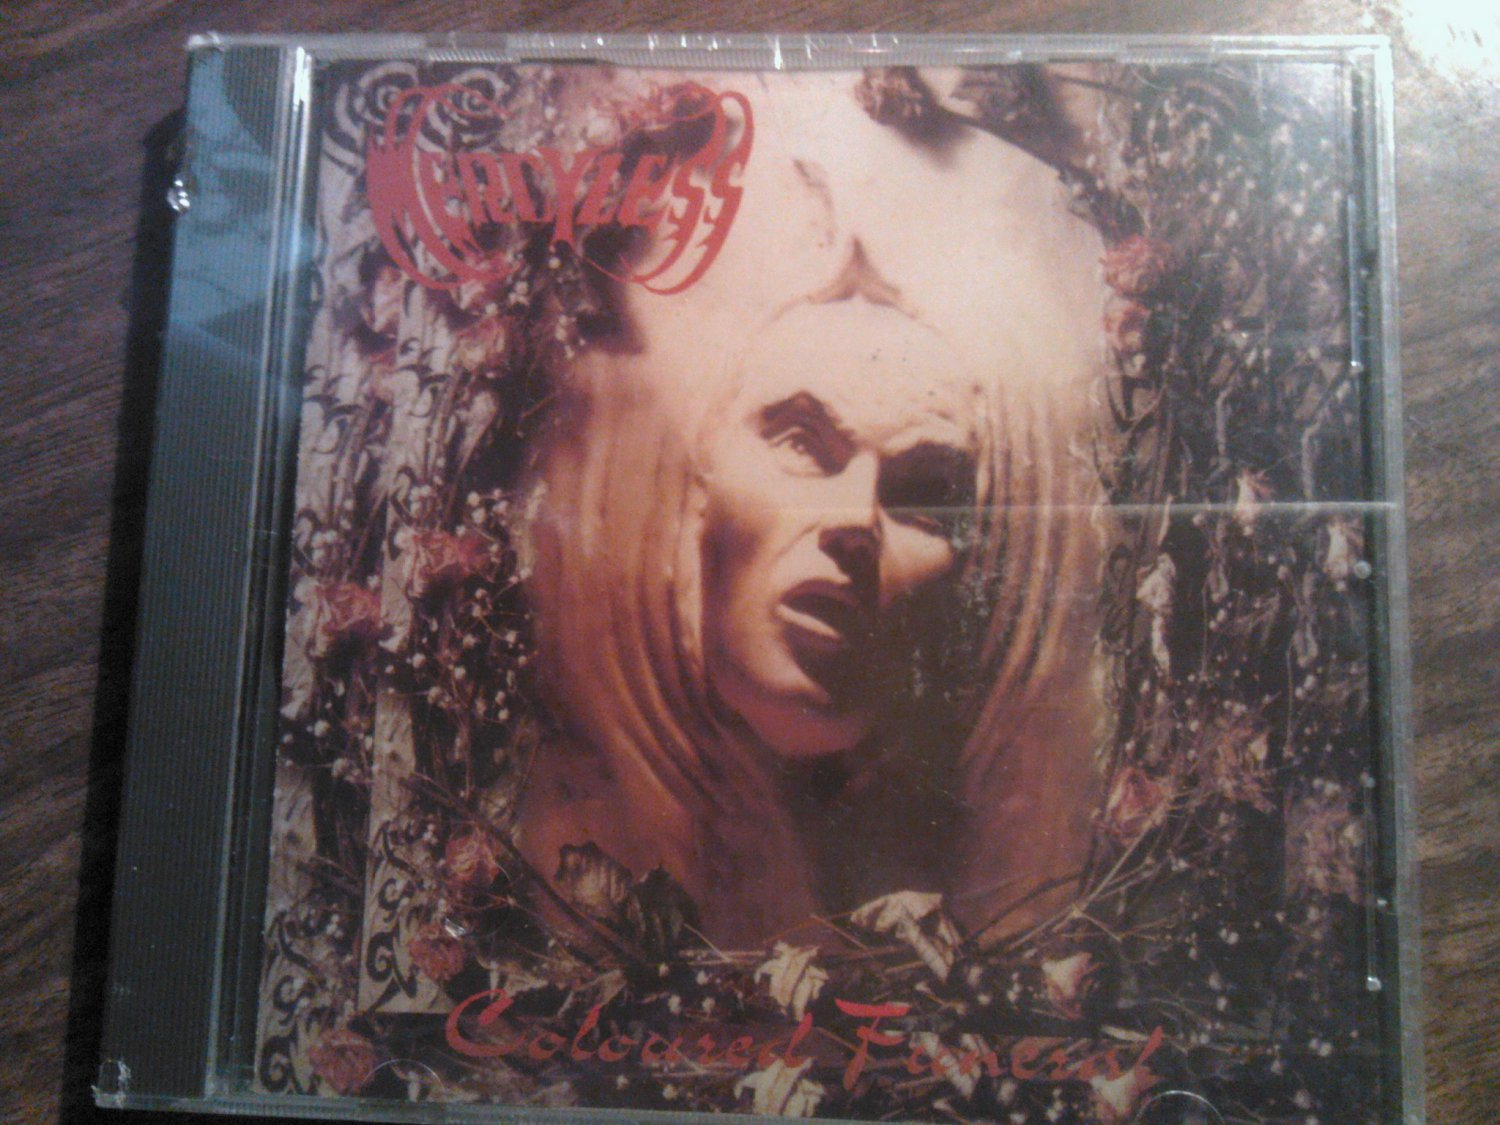 CD MERCYLESS Coloured Funeral metal SALE